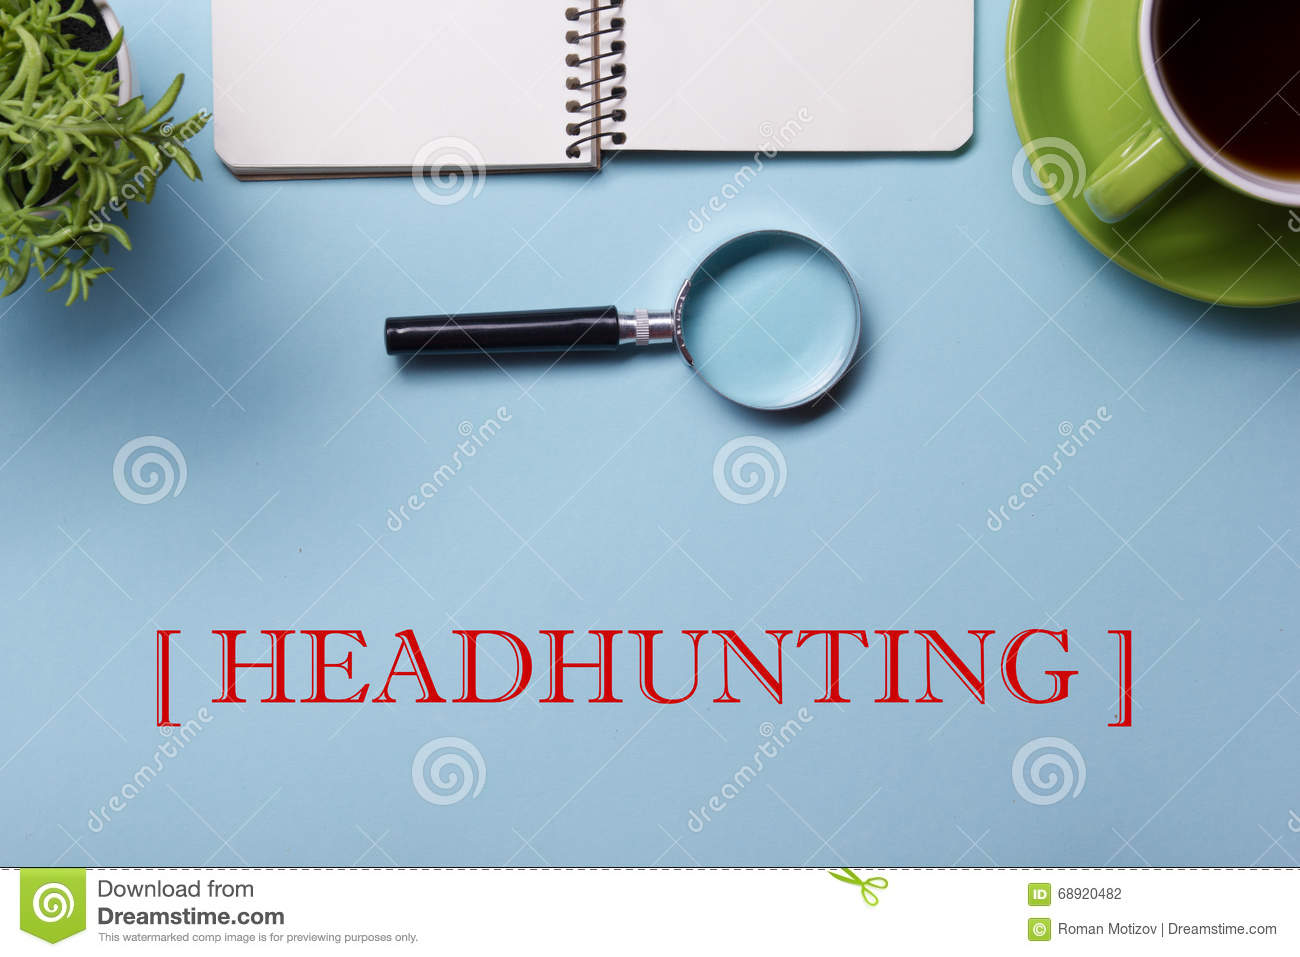 headhunting stock illustration image  headhunting hiring hr human resources position concept office supplies on desk table top view